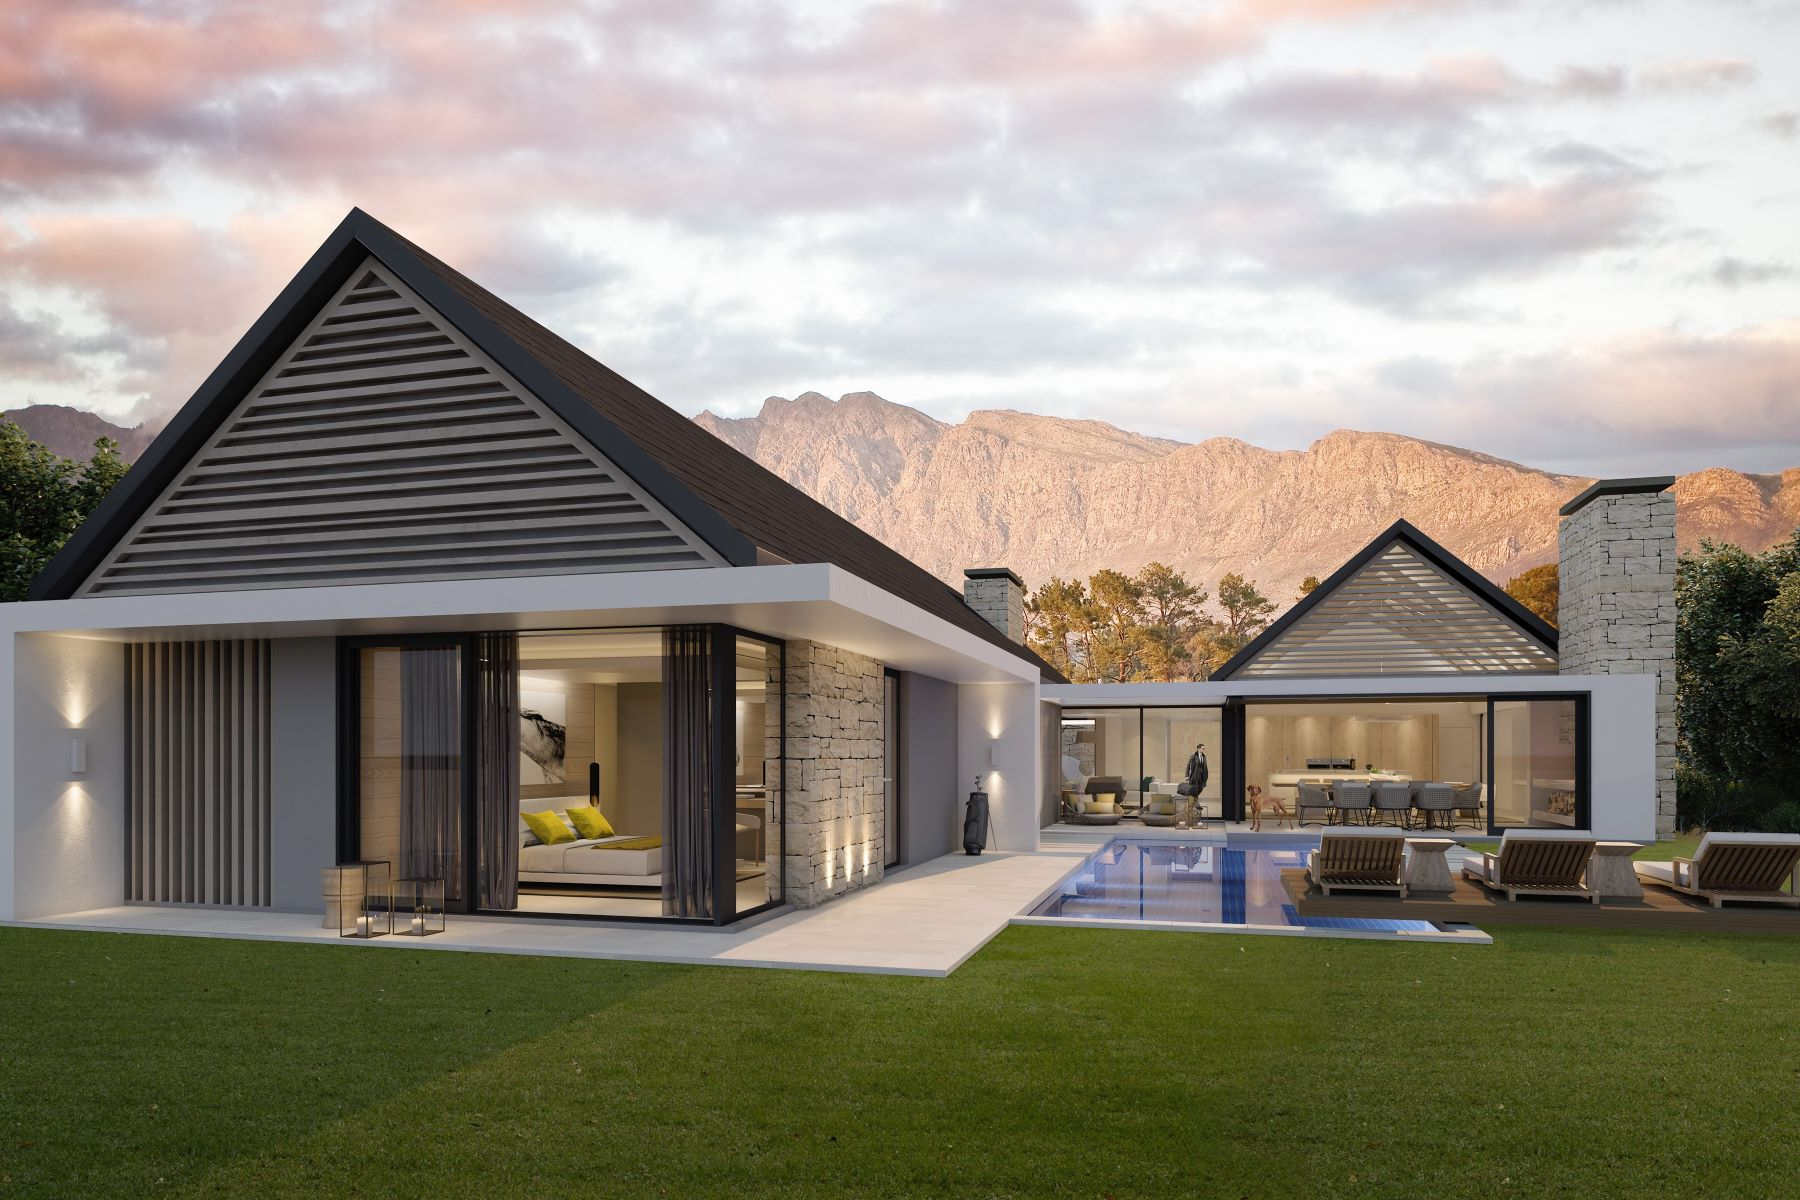 一戸建て のために 売買 アット Pearl Valley at Val de Vie Estate 566 Pearl Valley Val de Vie Estate Paarl, 西ケープ, 7646 南アフリカ